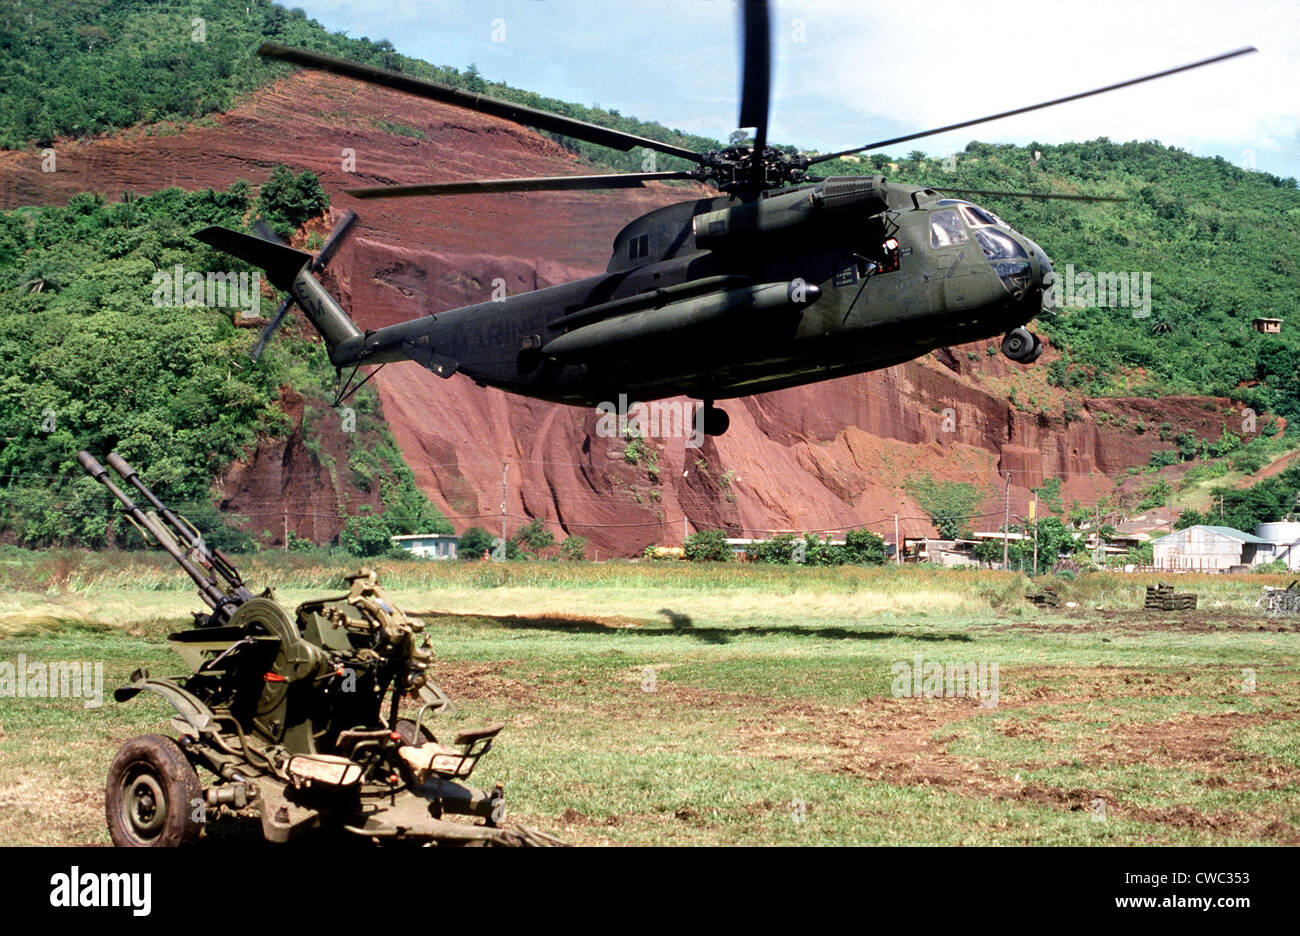 U.S. Marine Corps helicopter hovers near a Soviet anti-aircraft weapon during the U.S. invasion of Grenada in October - Stock Image